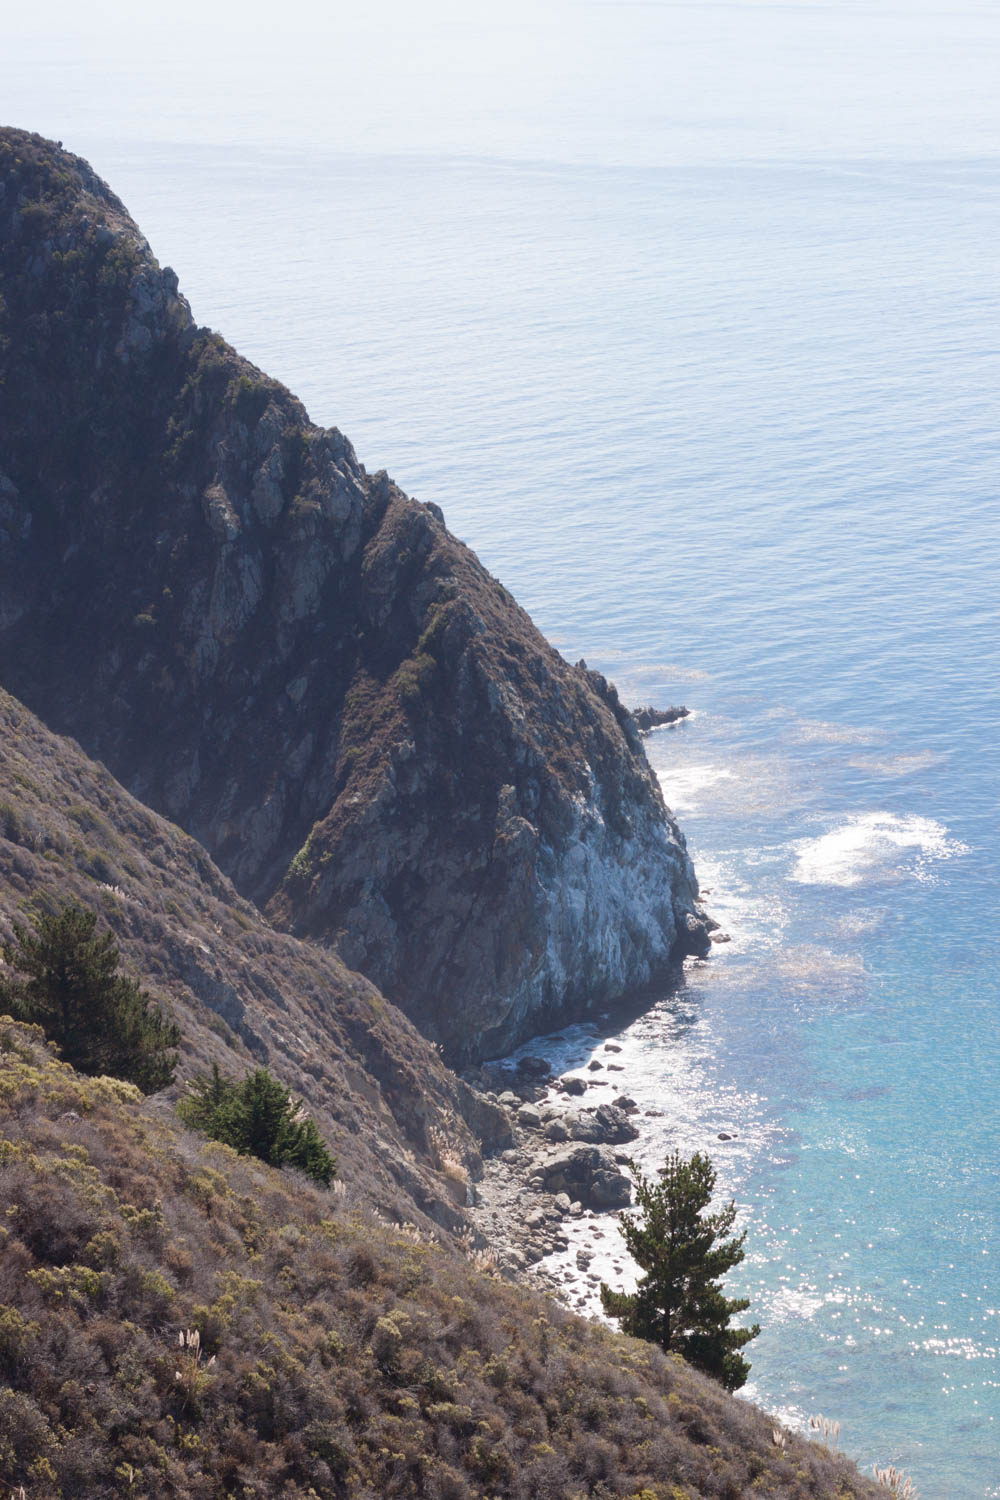 Cliffs of Big Sur, CA